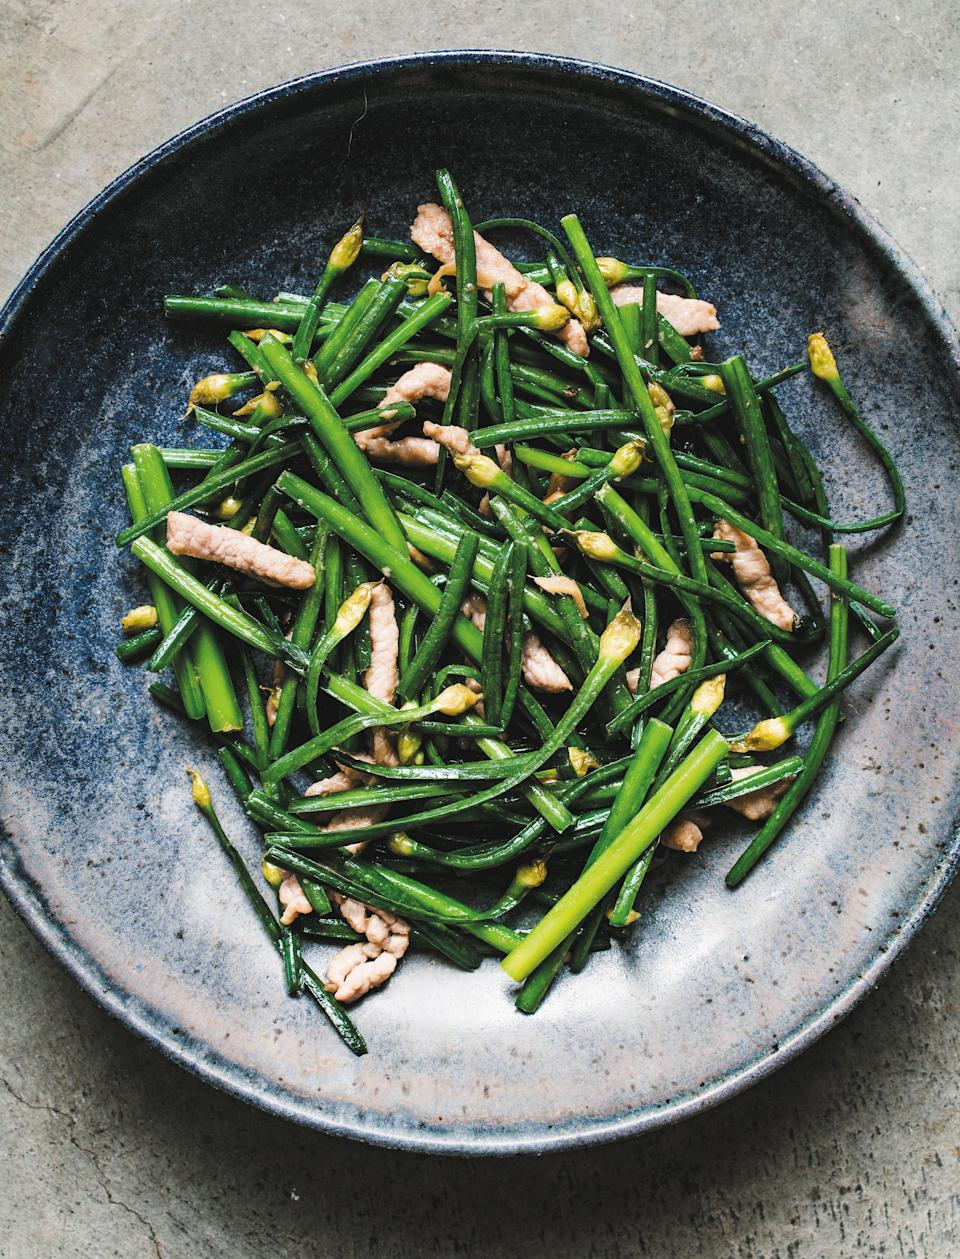 """This vibrant green dish is one of our favorite recipes from Epi contributor Betty Liu's <a href=""""https://www.epicurious.com/expert-advice/the-11-best-new-cookbooks-of-spring-2021-article?mbid=synd_yahoo_rss"""" rel=""""nofollow noopener"""" target=""""_blank"""" data-ylk=""""slk:new cookbook"""" class=""""link rapid-noclick-resp"""">new cookbook</a>, <em>My Shanghai</em>. <a href=""""https://www.epicurious.com/recipes/food/views/flowering-chives-pork-slivers-betty-liu?mbid=synd_yahoo_rss"""" rel=""""nofollow noopener"""" target=""""_blank"""" data-ylk=""""slk:See recipe."""" class=""""link rapid-noclick-resp"""">See recipe.</a>"""